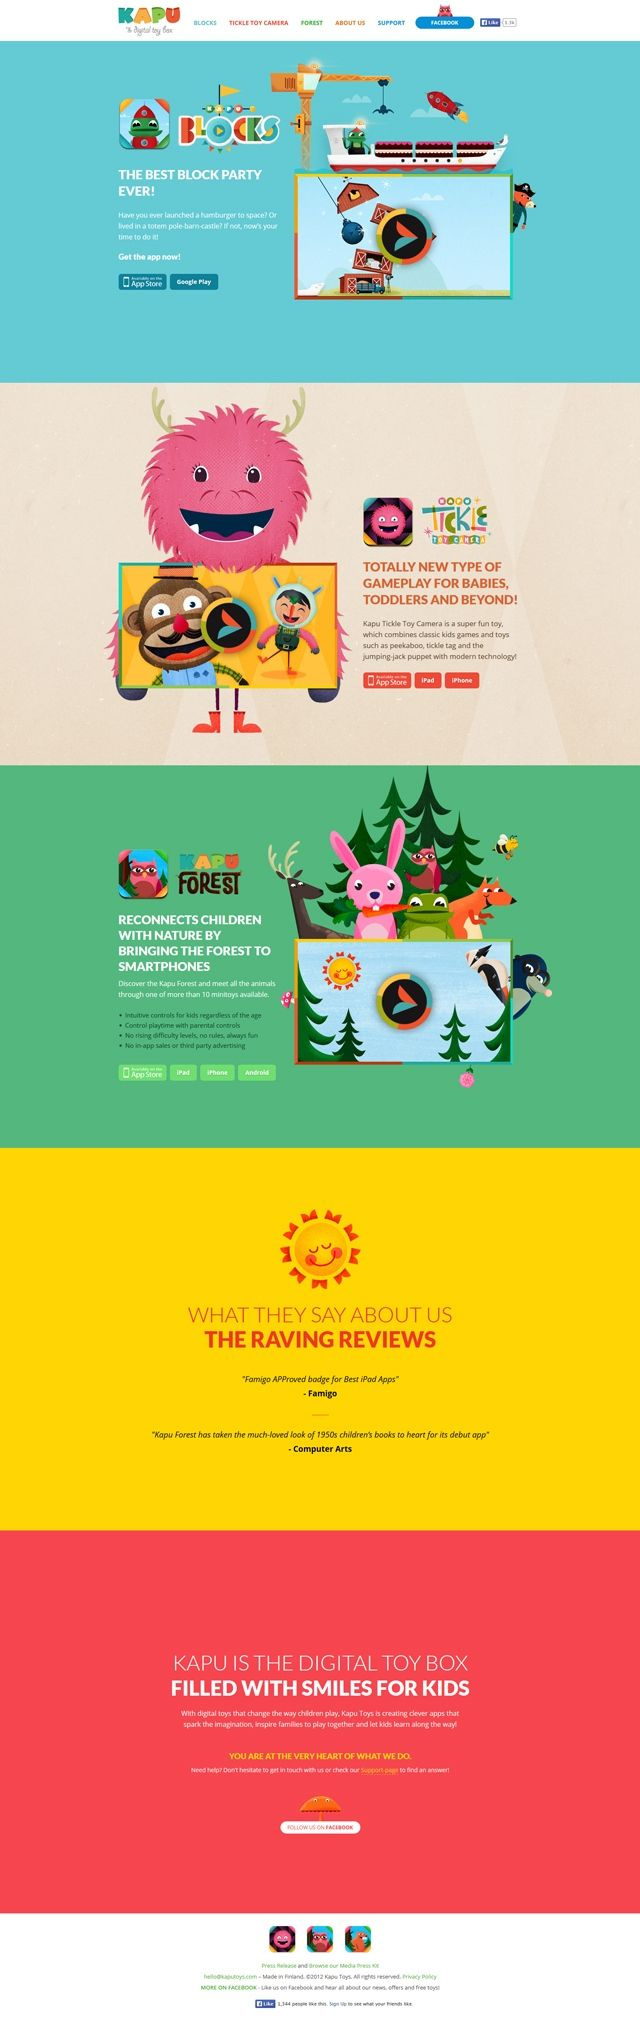 This Web Design is related to toy's website. It has very nice graphic and will attract children like this website. The colour mood is nice, I like the colourful mood.